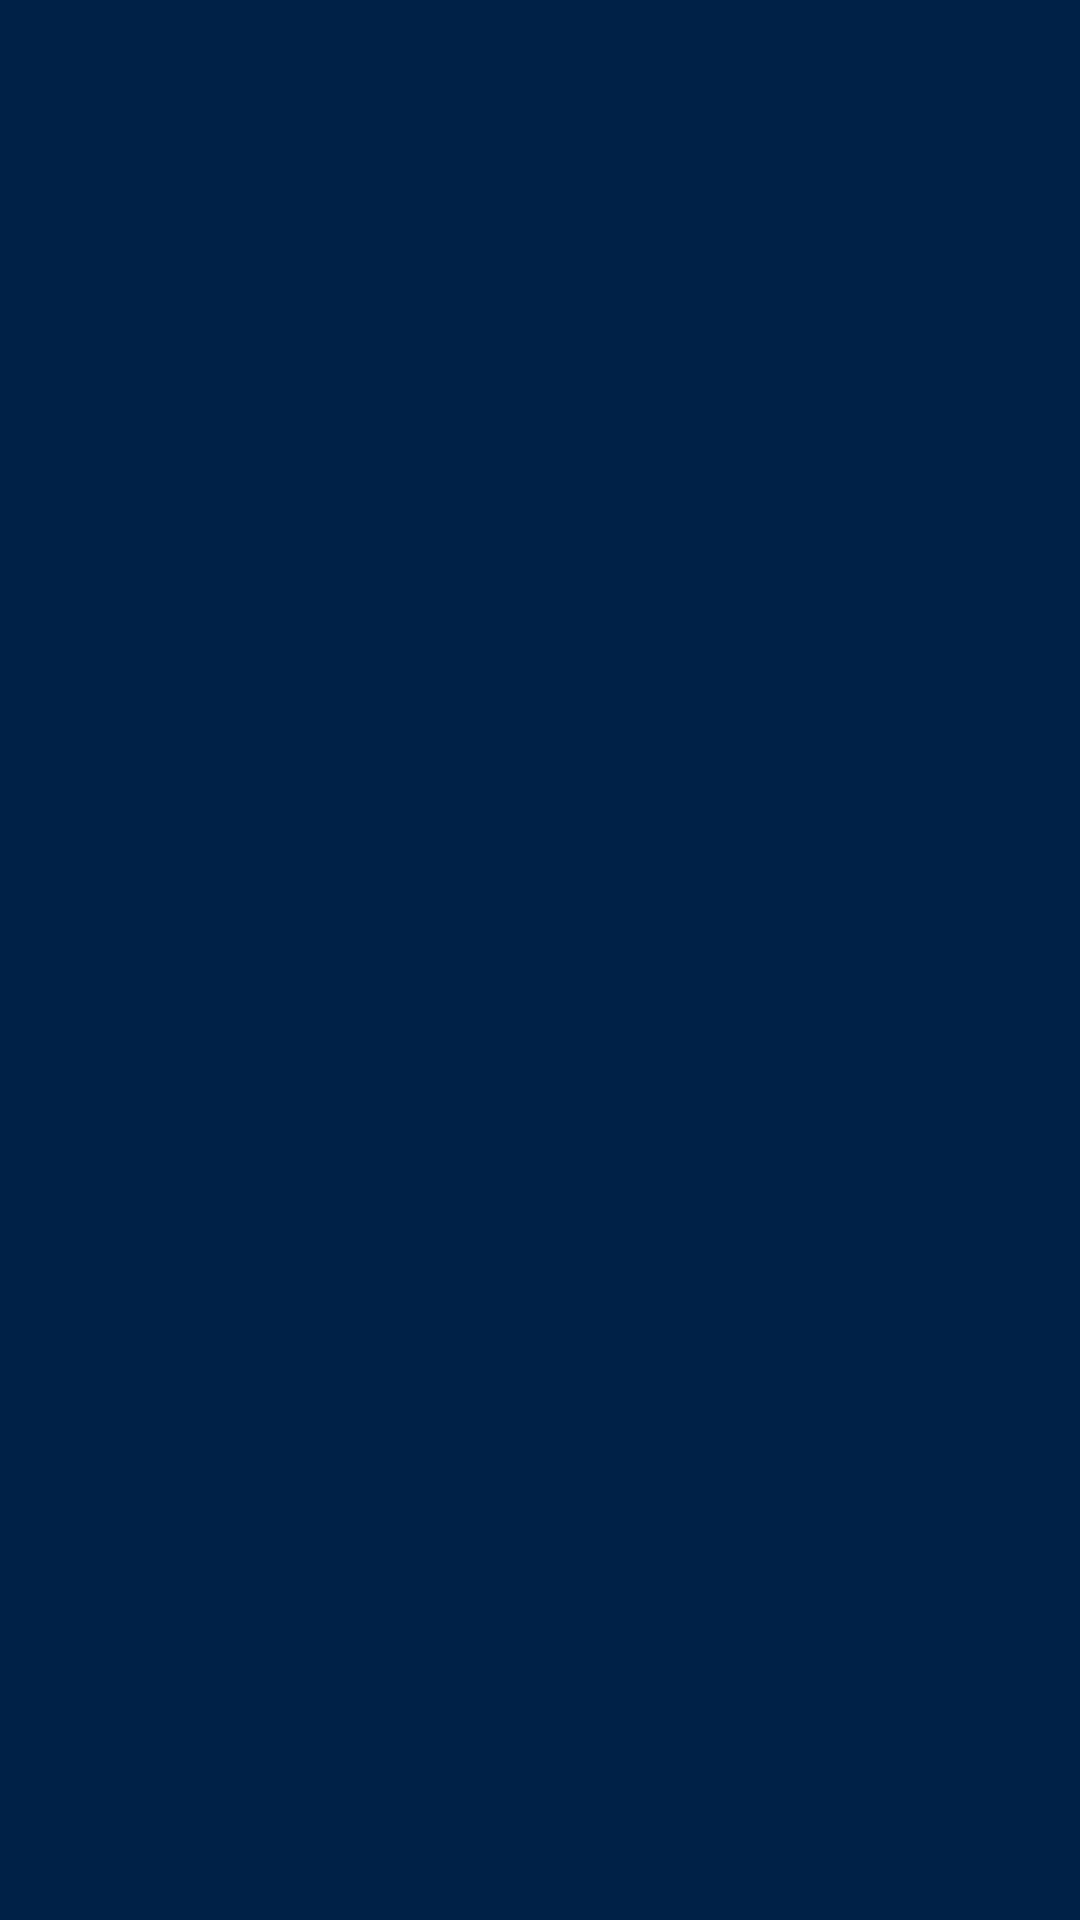 1080x1920 Oxford Blue Solid Color Background